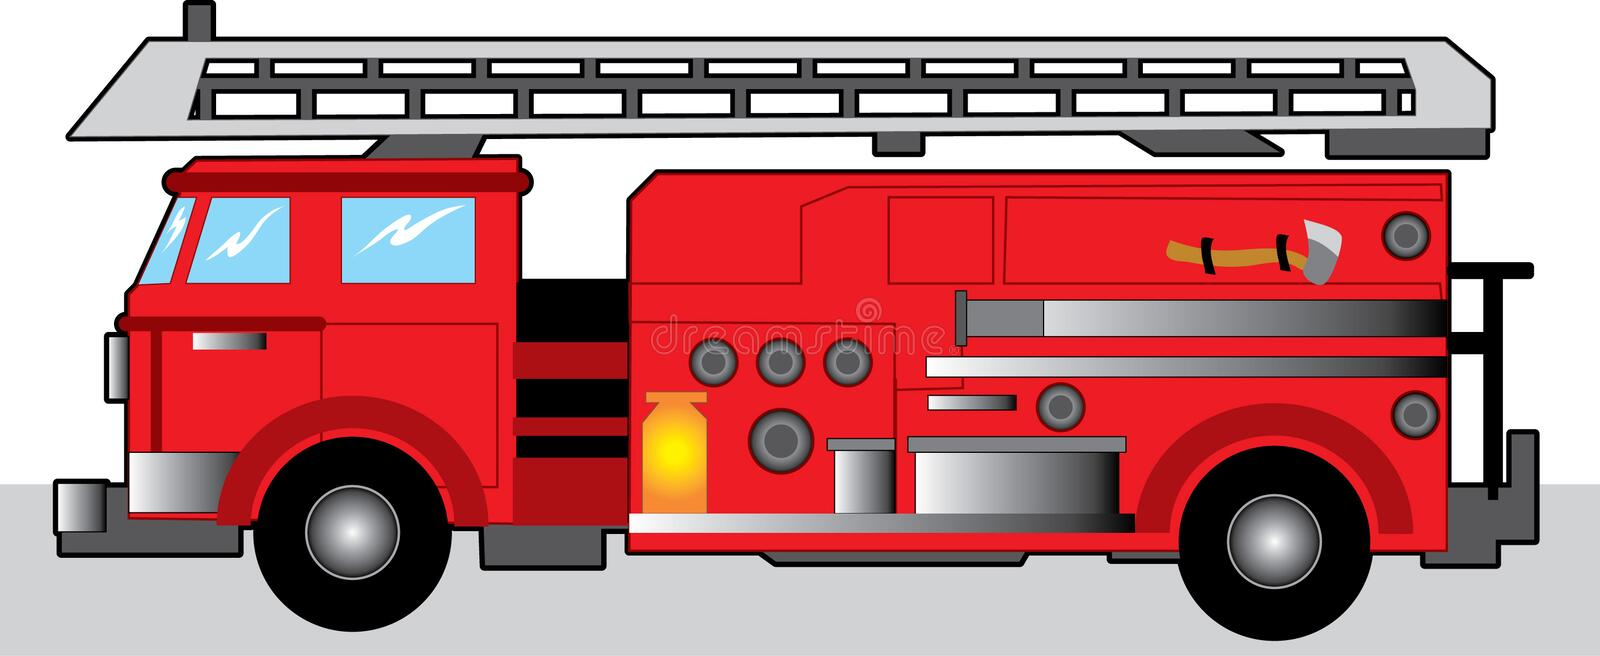 Fire Truck. Red Fire Engine with hook and ladders stock illustration